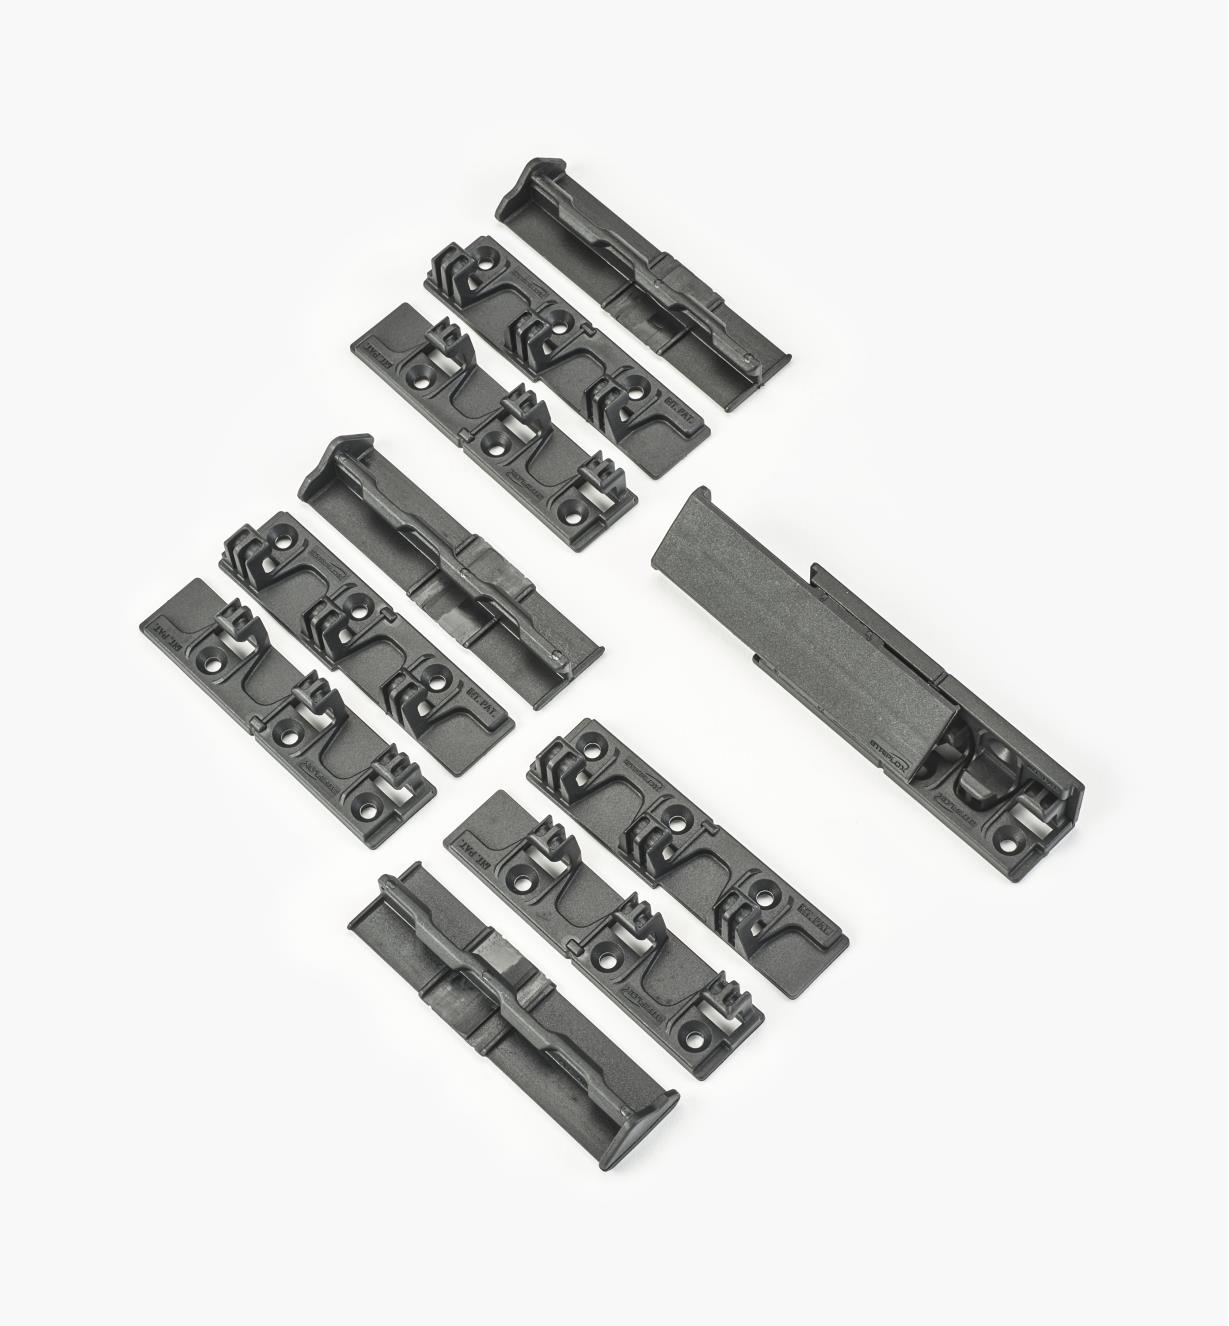 00S0188 - Large Striplox 90° Panel Connector, pkg. of 4